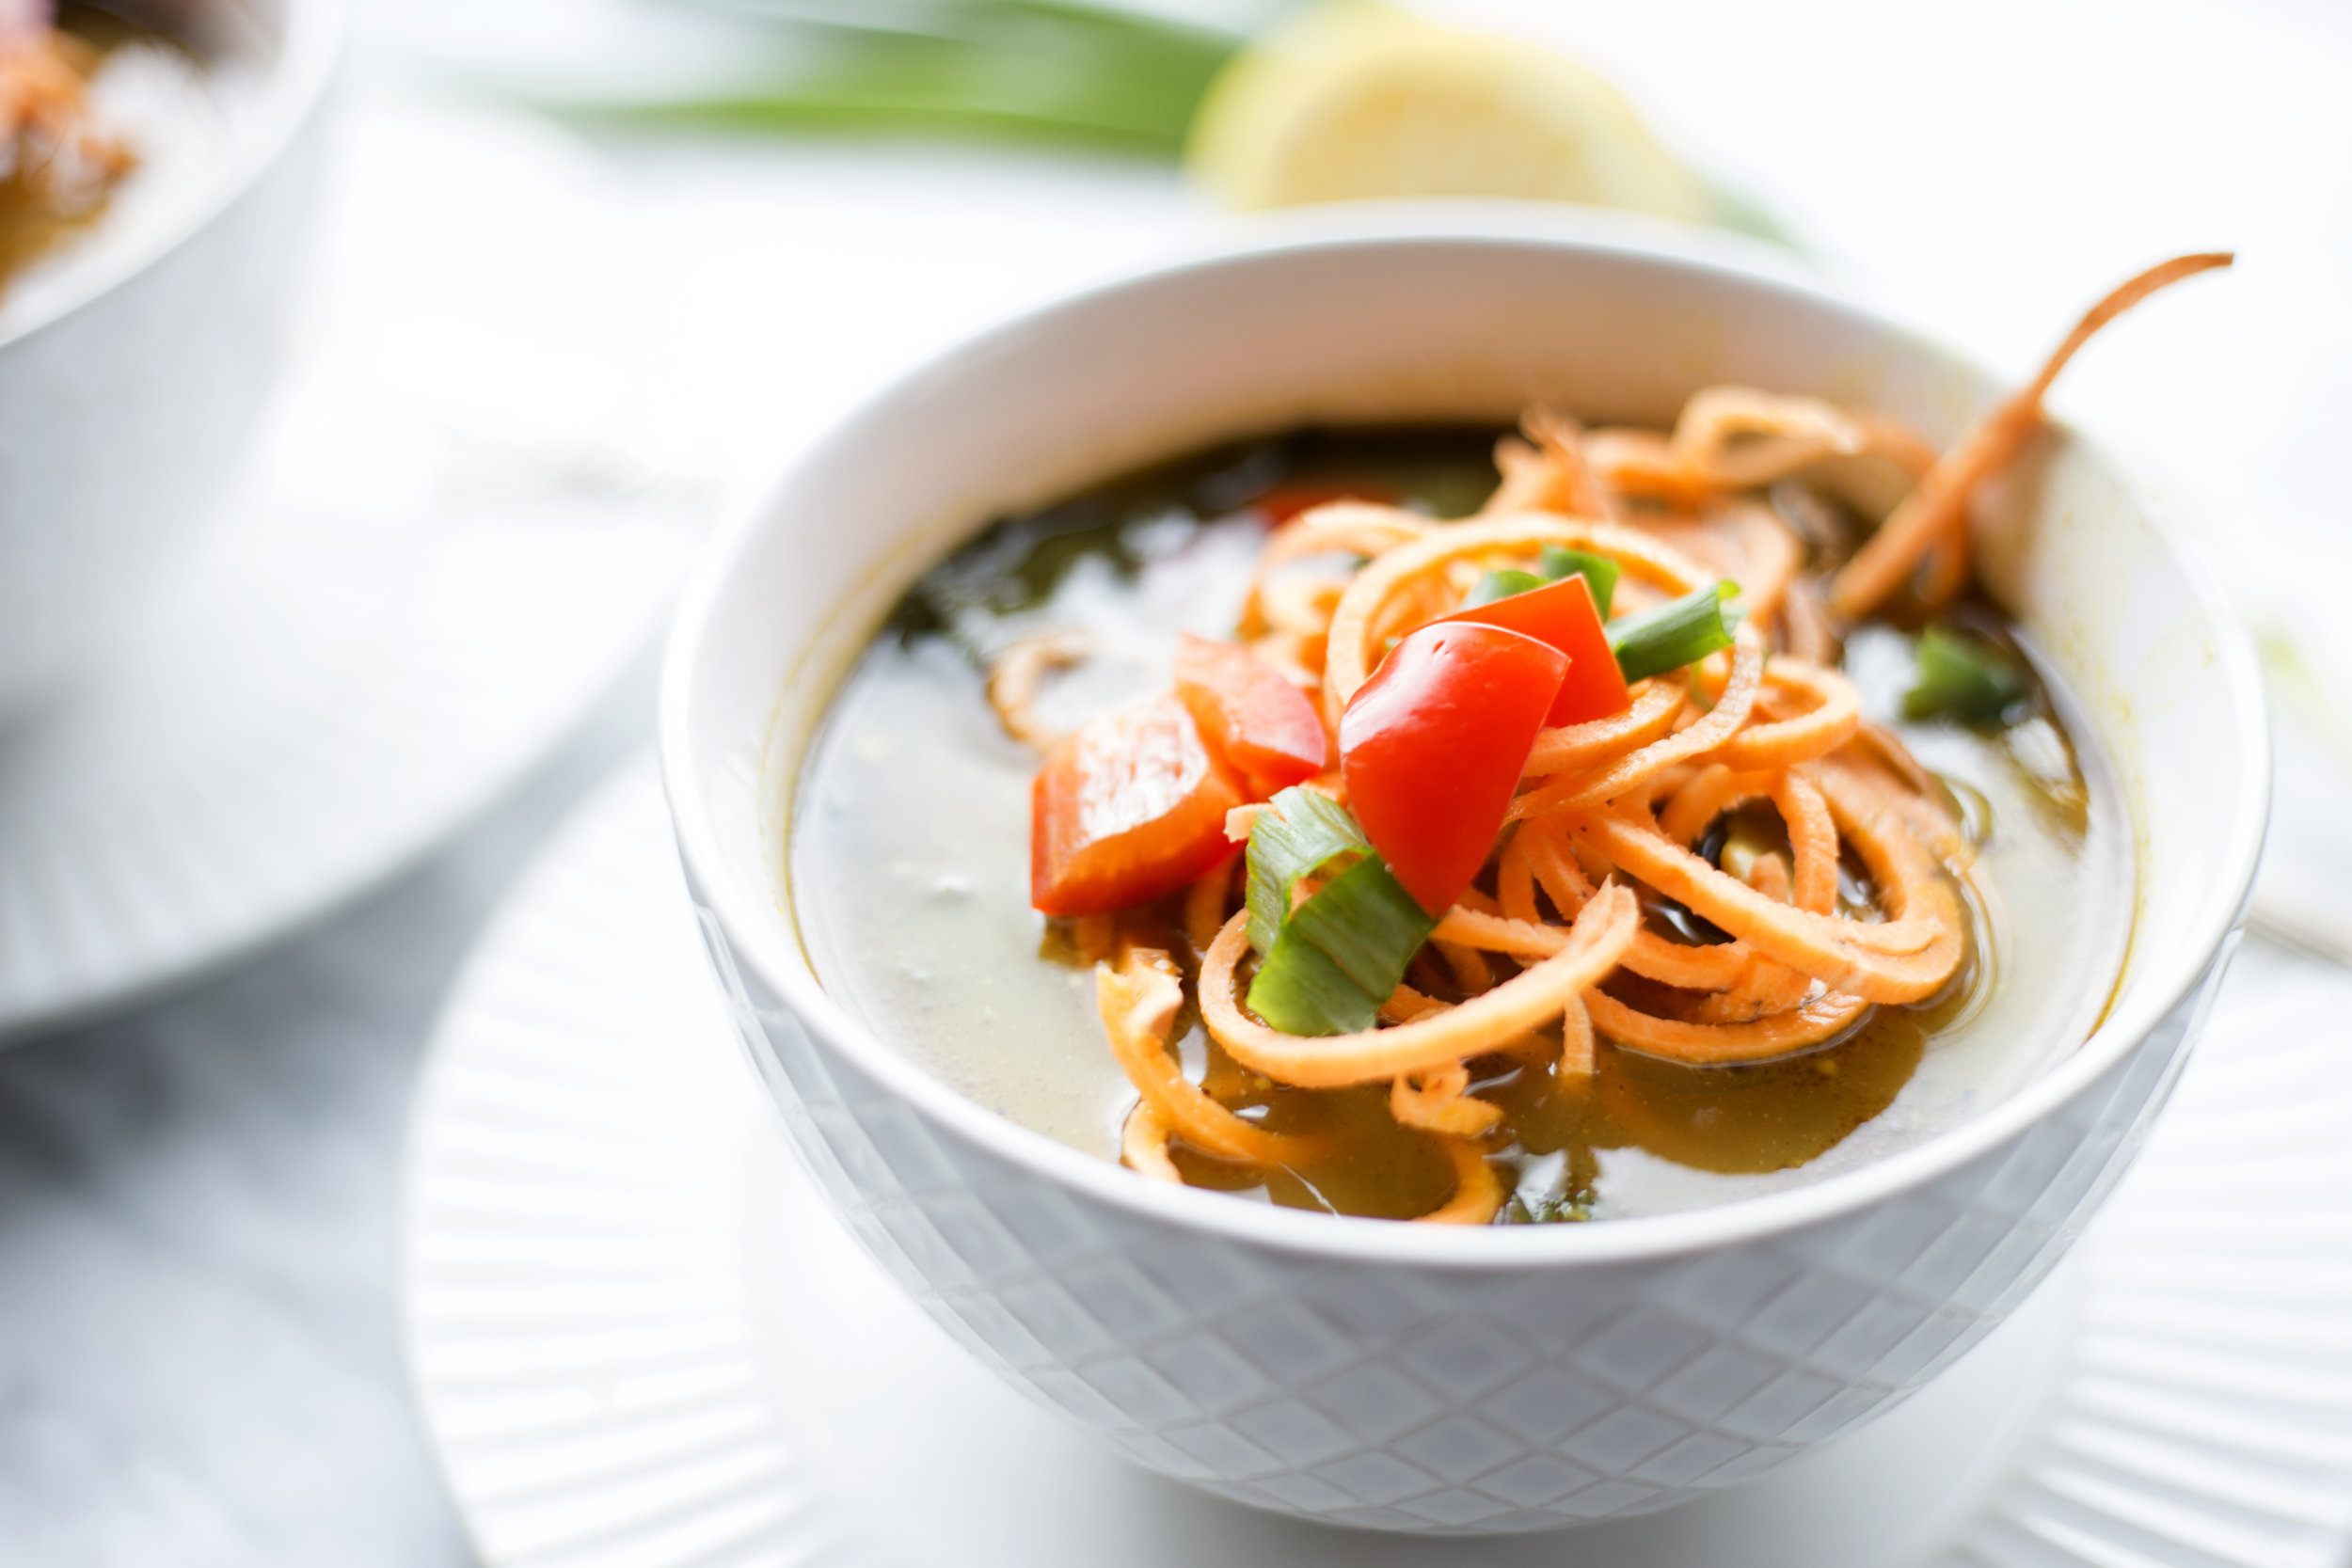 Spiralized sweet potato noodles in a fall soup